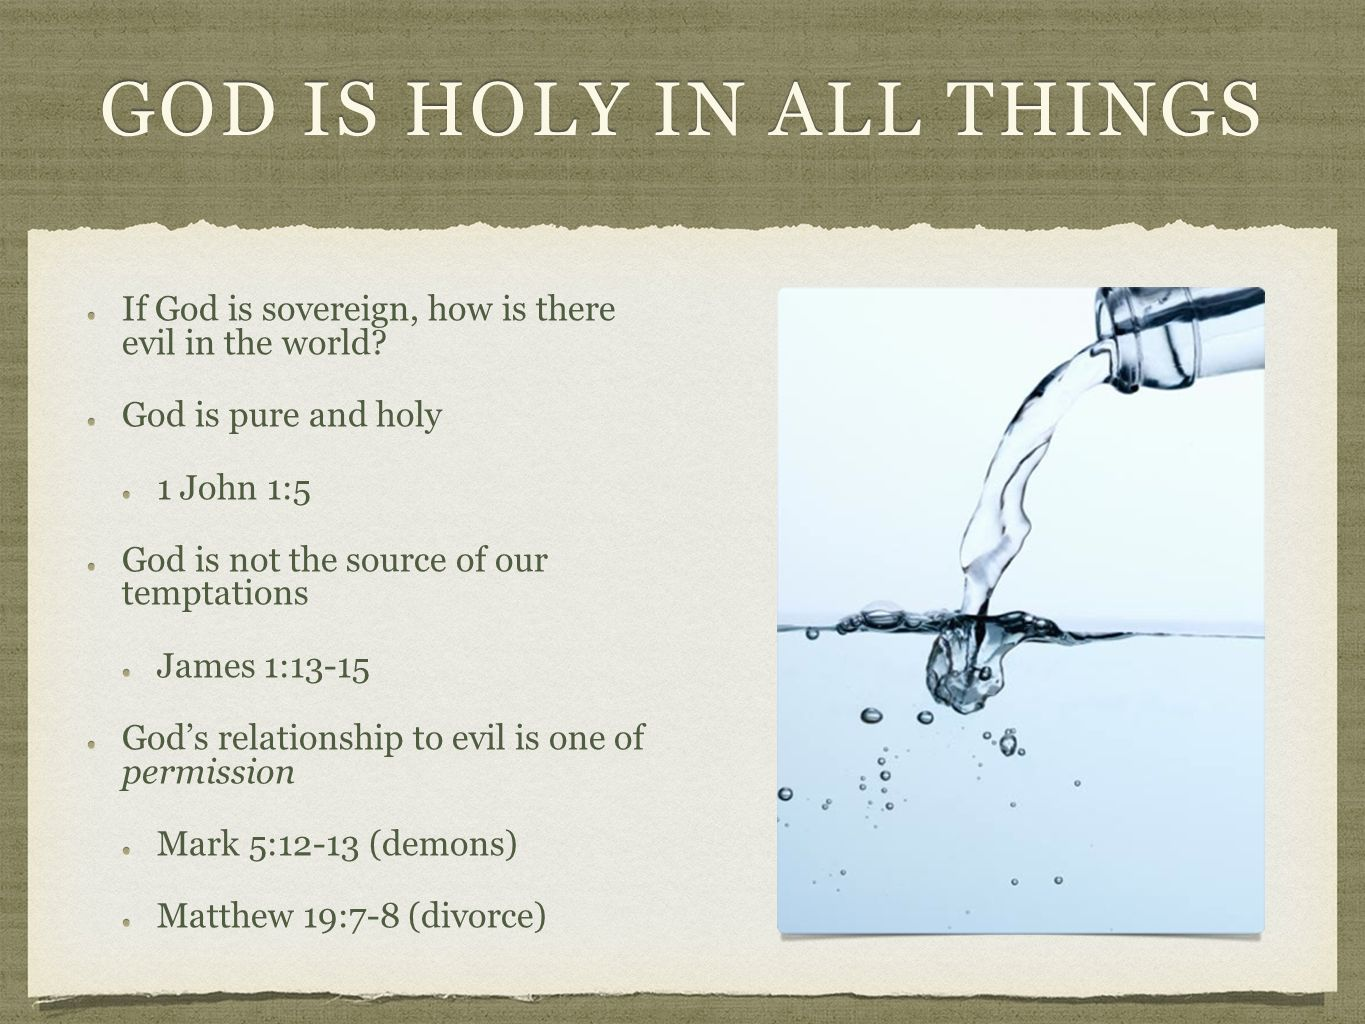 GOD IS HOLY IN ALL THINGS If God is sovereign, how is there evil in the world? God is pure and holyGod is pure and holy 1 John 1:51 John 1:5 God is no